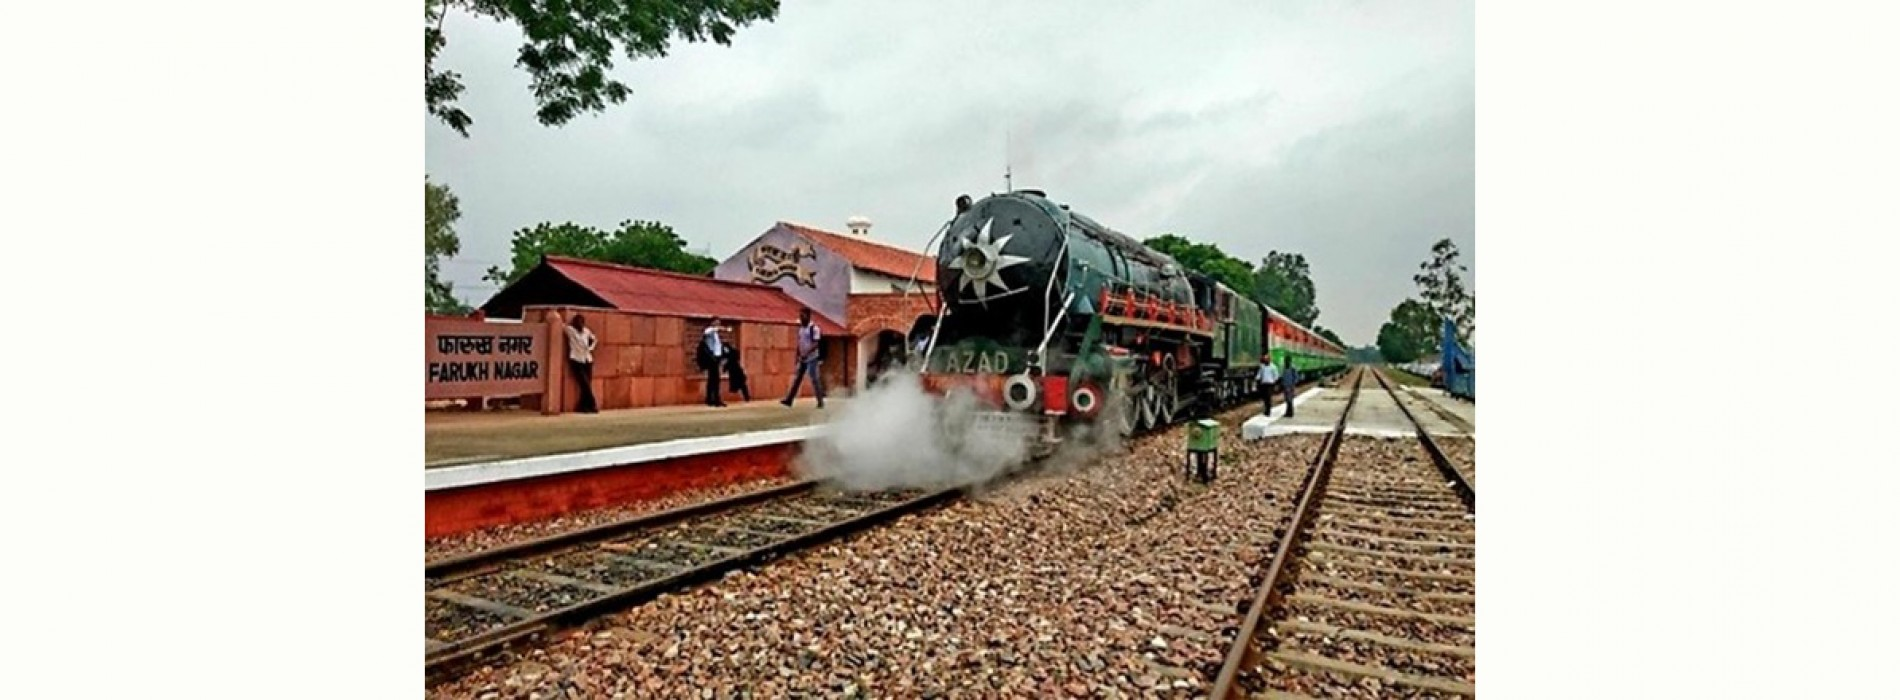 Northern Railway launches heritage steam train